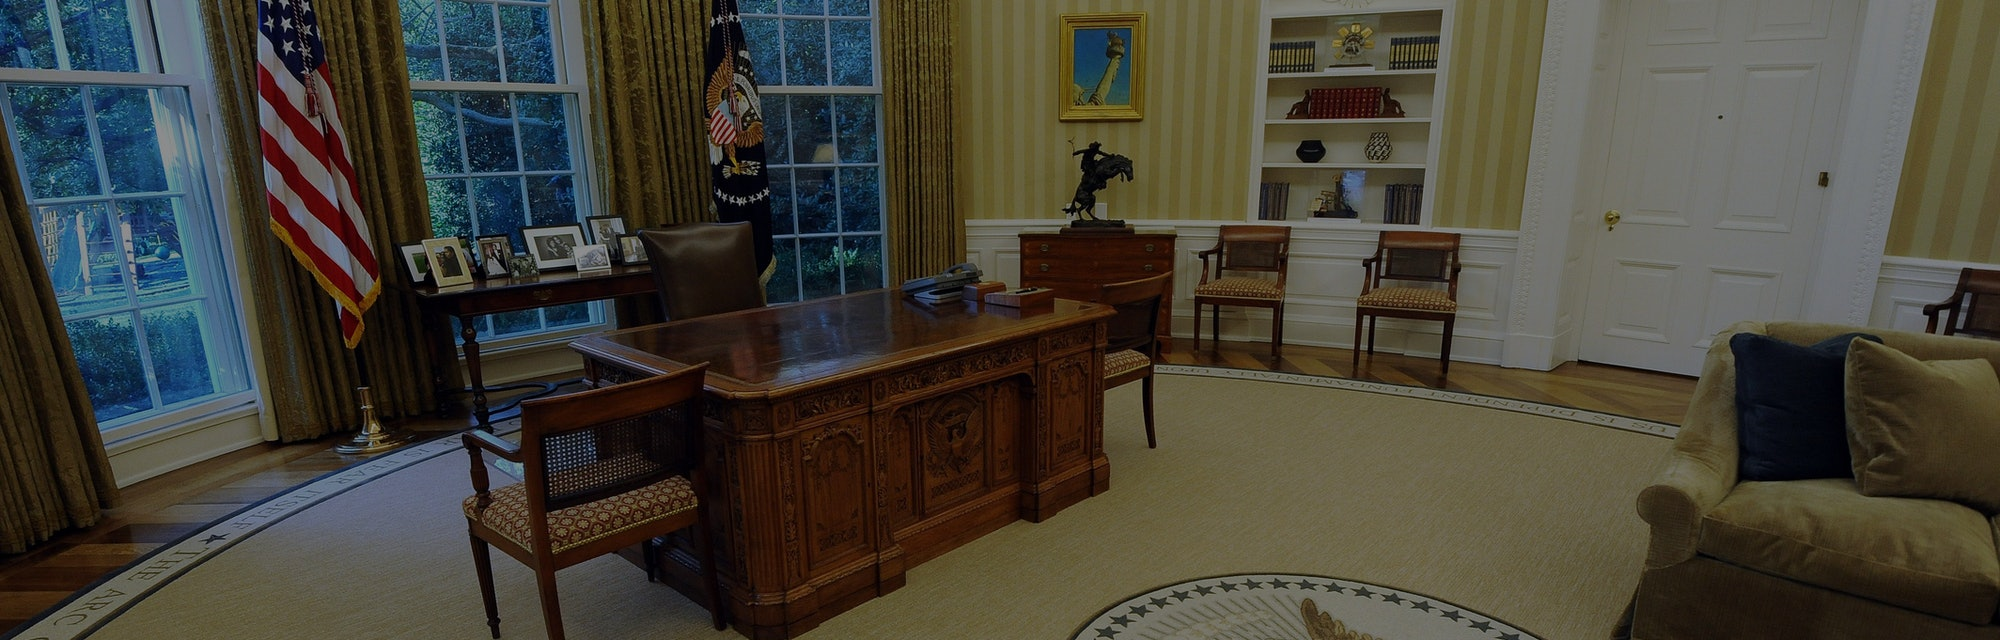 White House oval office.